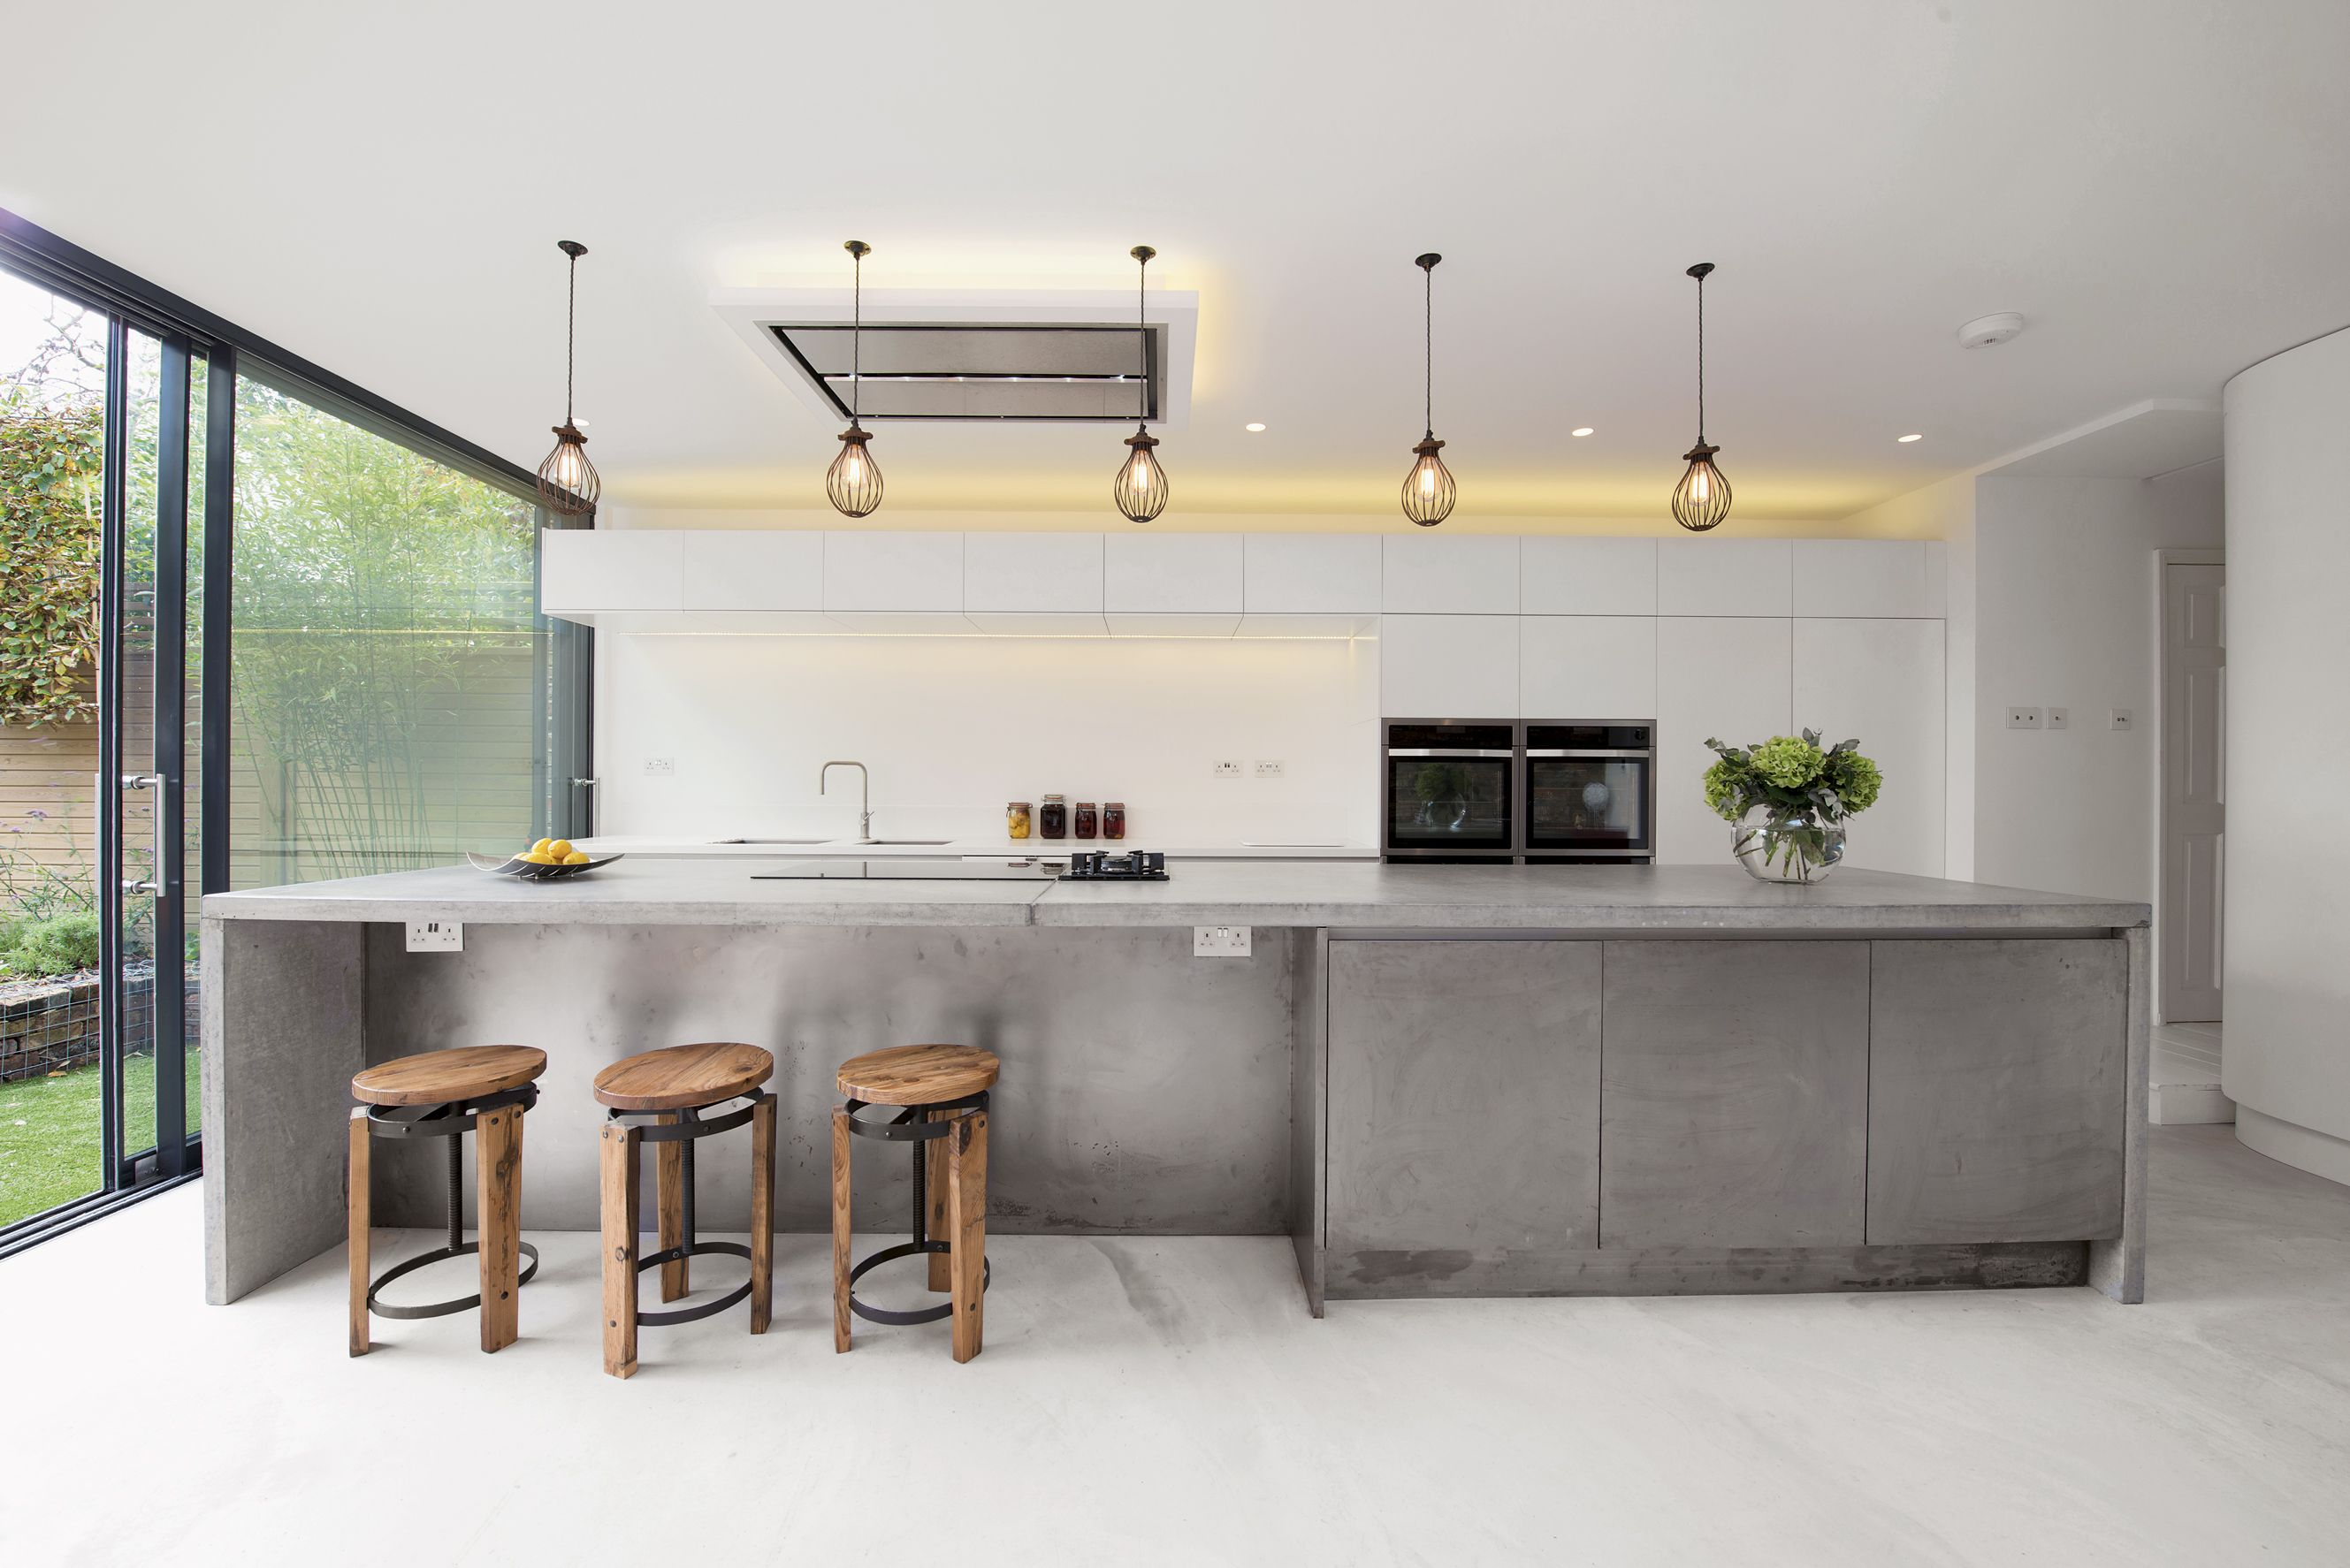 This Large Island Is Clad In Concrete And Is Paired With A Polished Concrete Floor Design B Concrete Kitchen Island Concrete Kitchen Industrial Style Kitchen